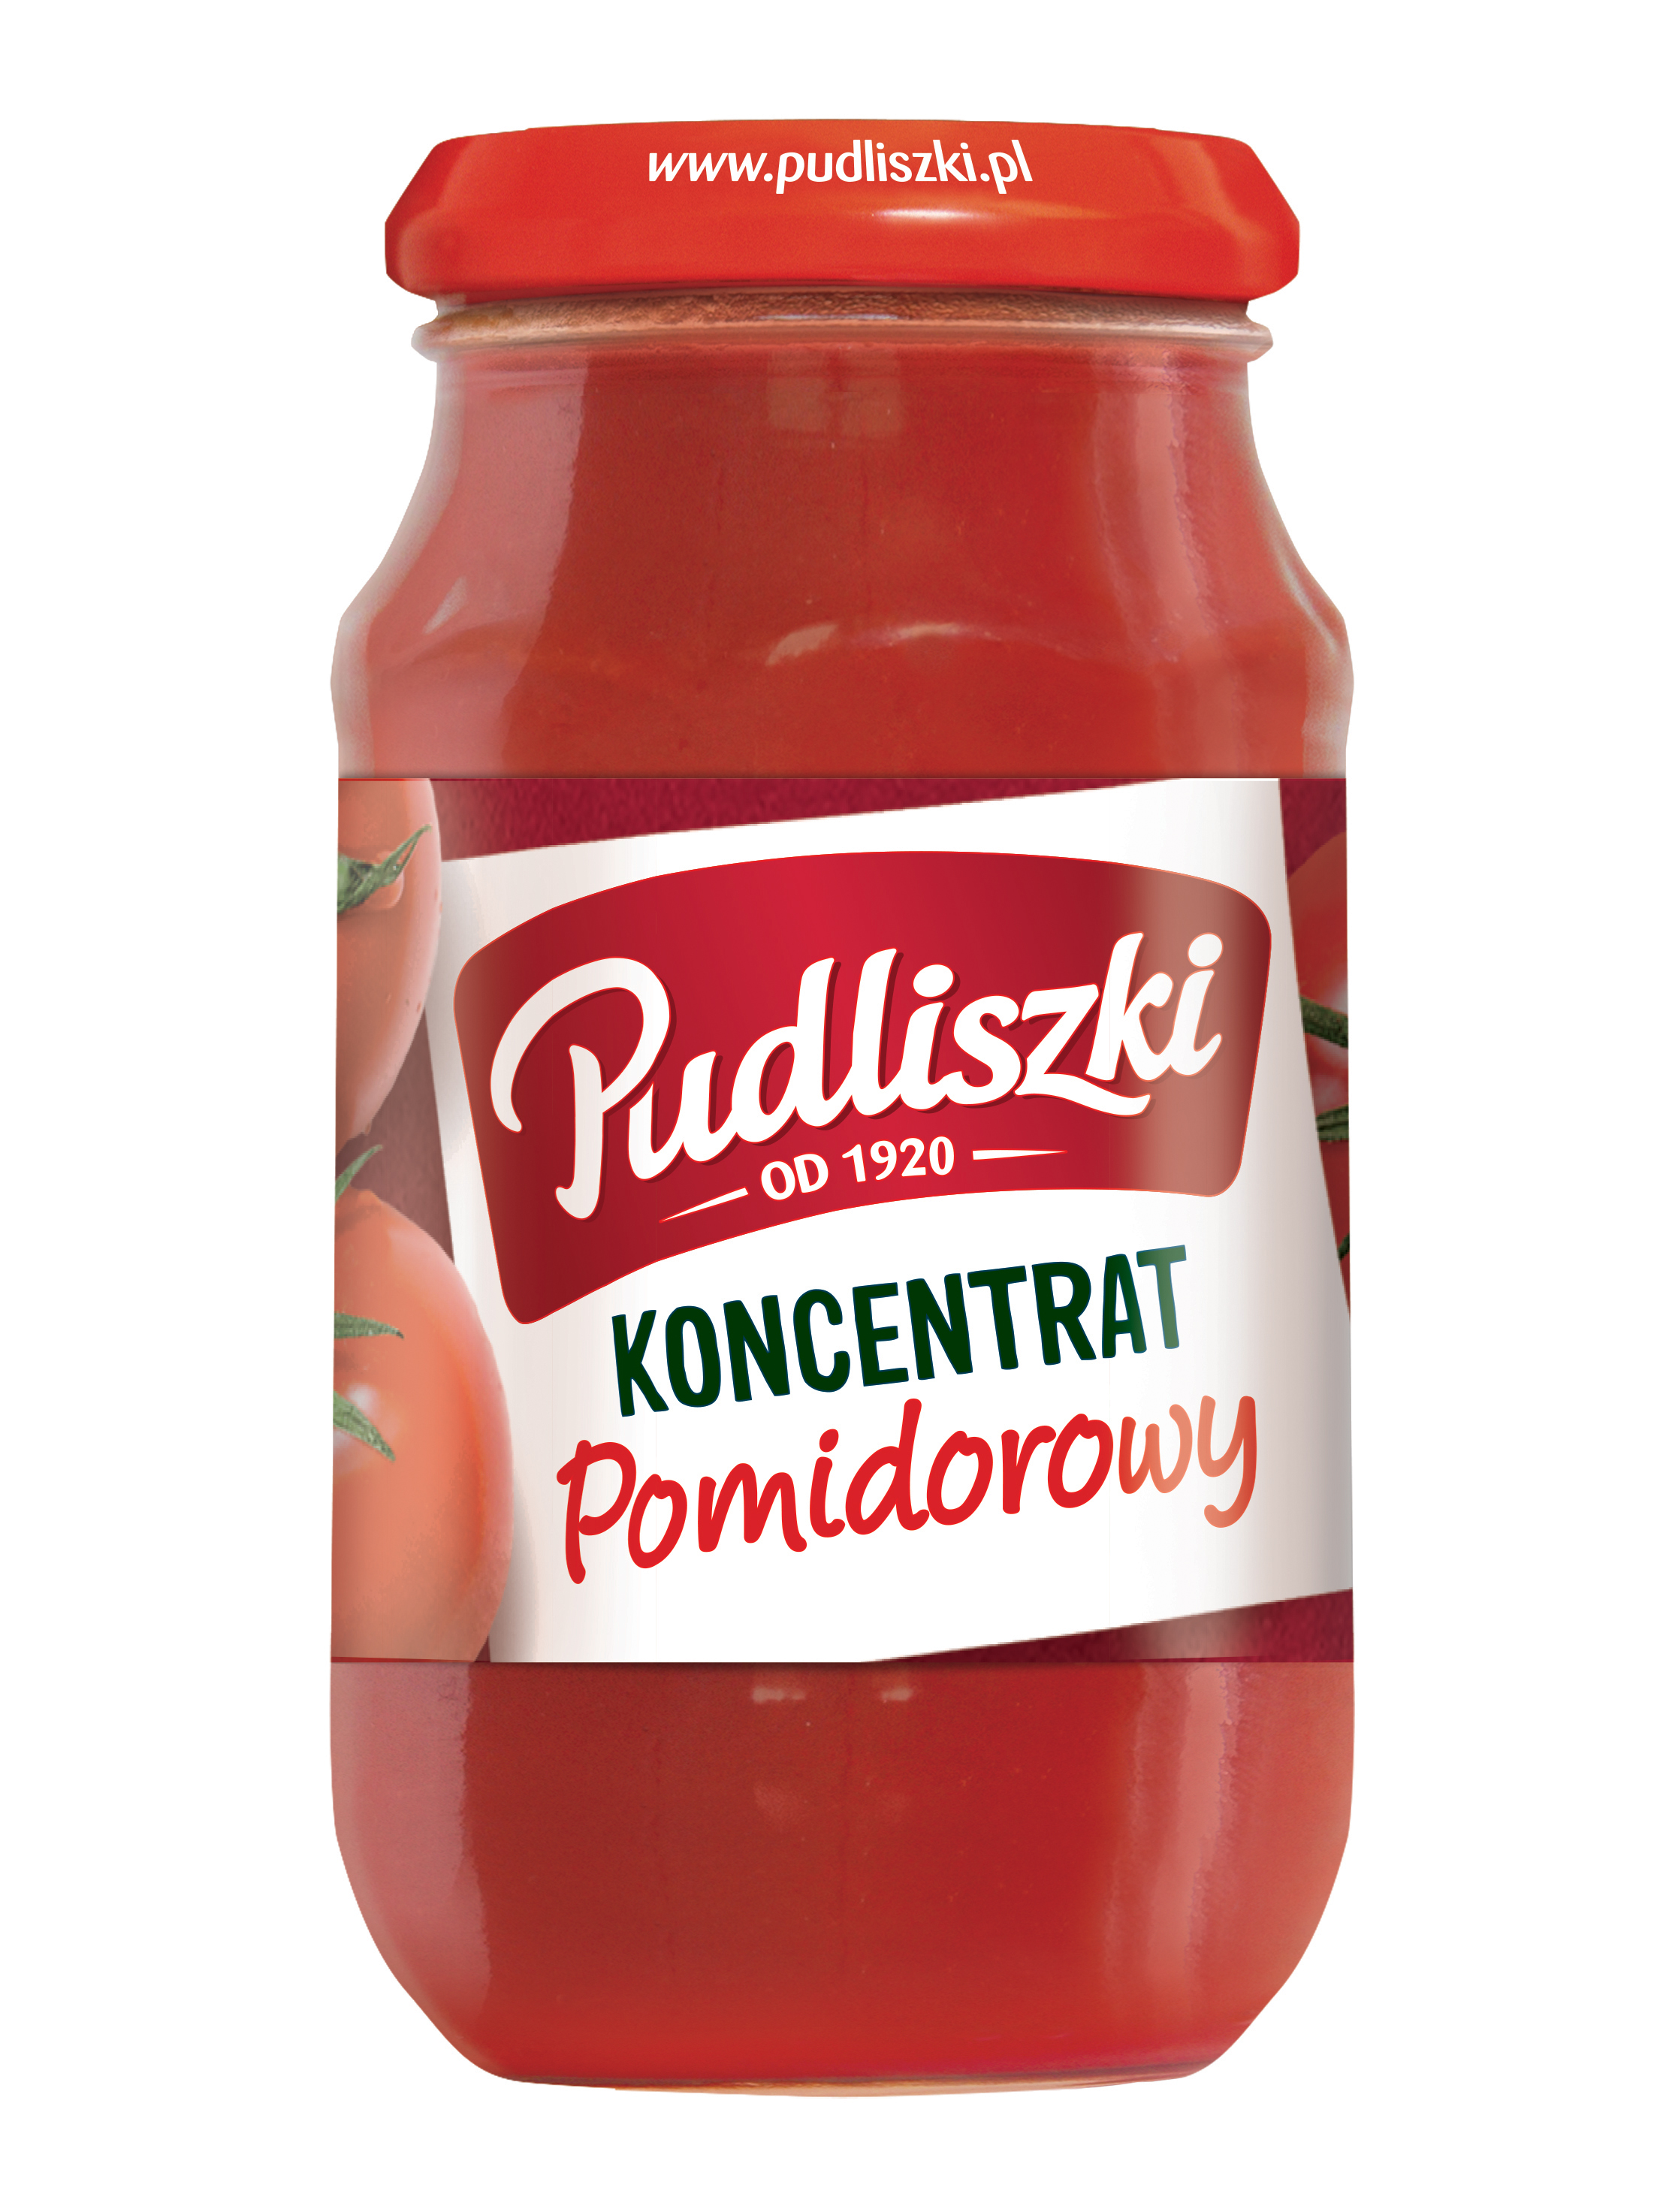 Koncentrat pomidorowy 310 g image